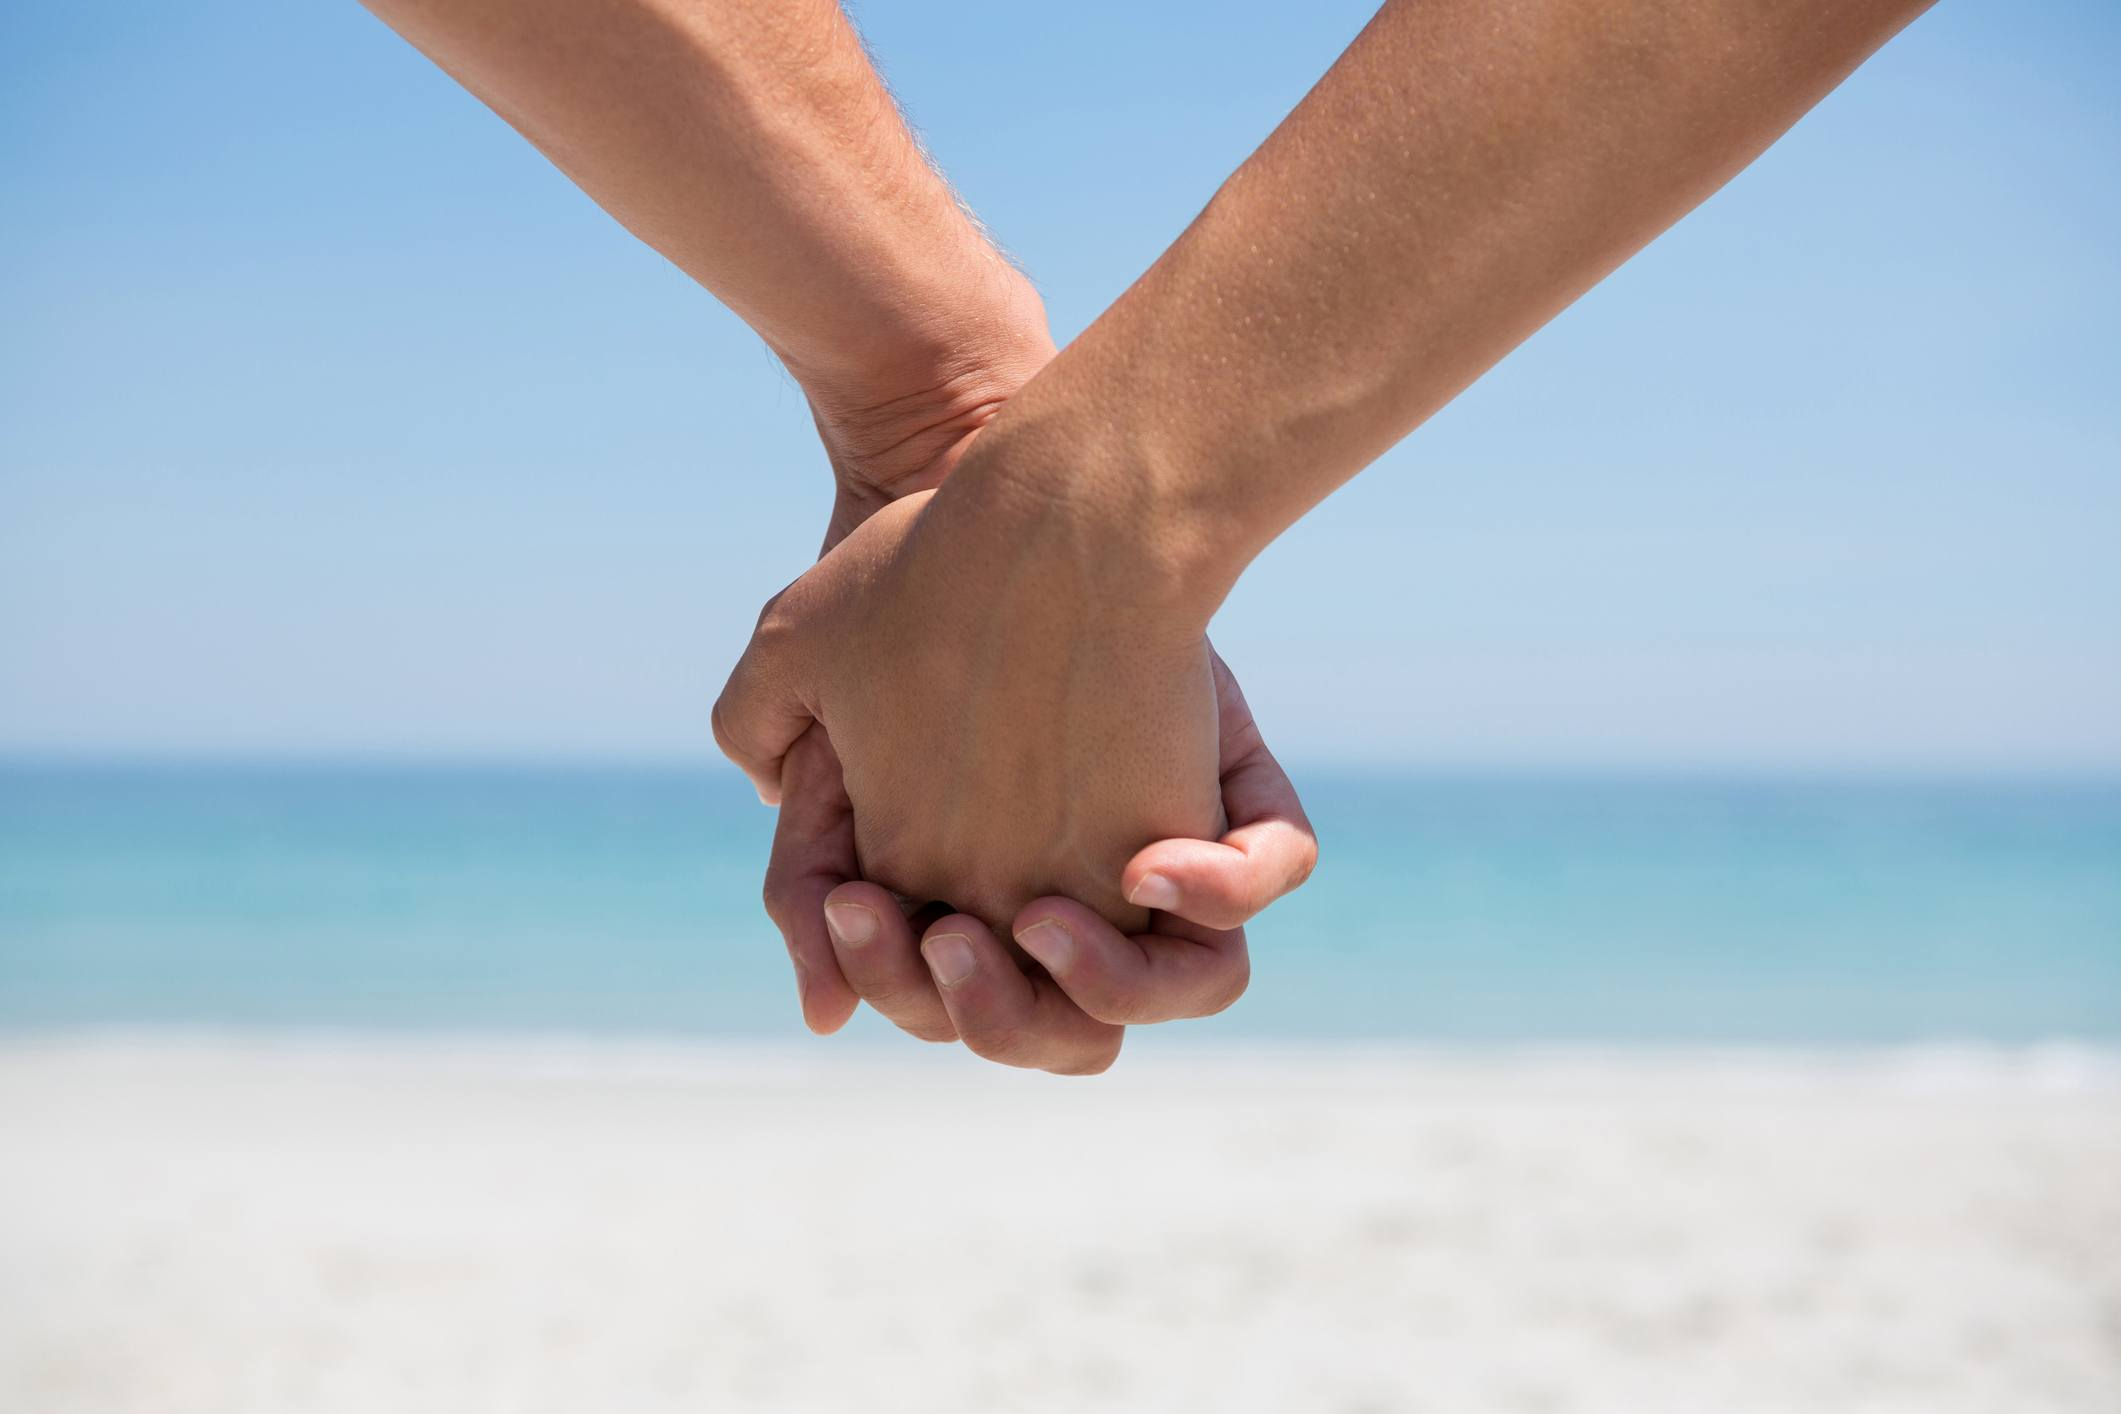 Speaking, opinion, budding nudist couples cleared